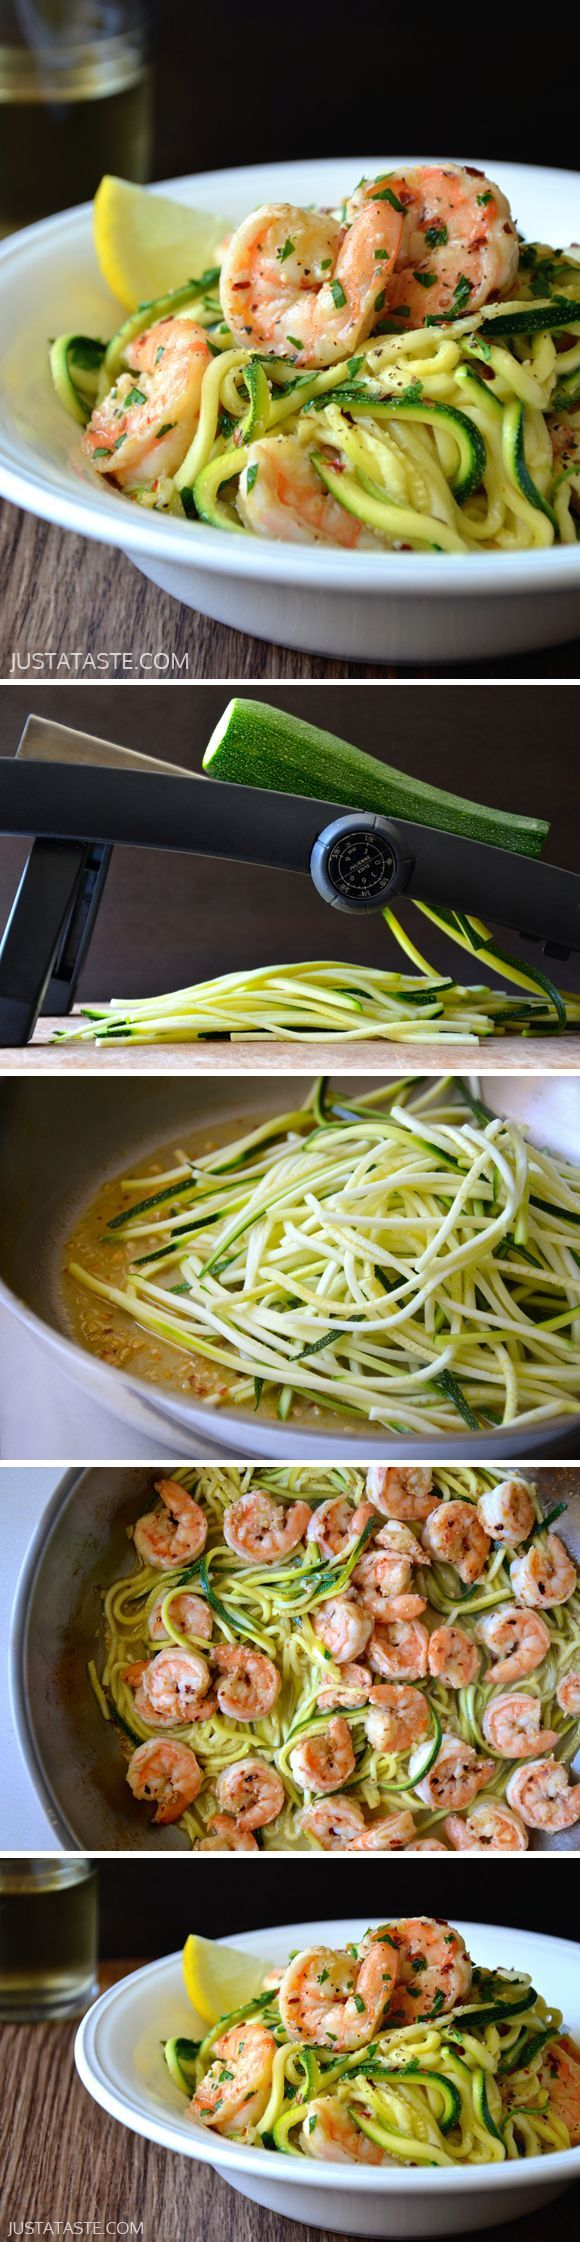 Shrimp Scampi with Zucchini Noodles - Enjoy this recipe and For great motivation, health and fitness tips, check them out at: www.betterbodyfitnessbootcamps.com